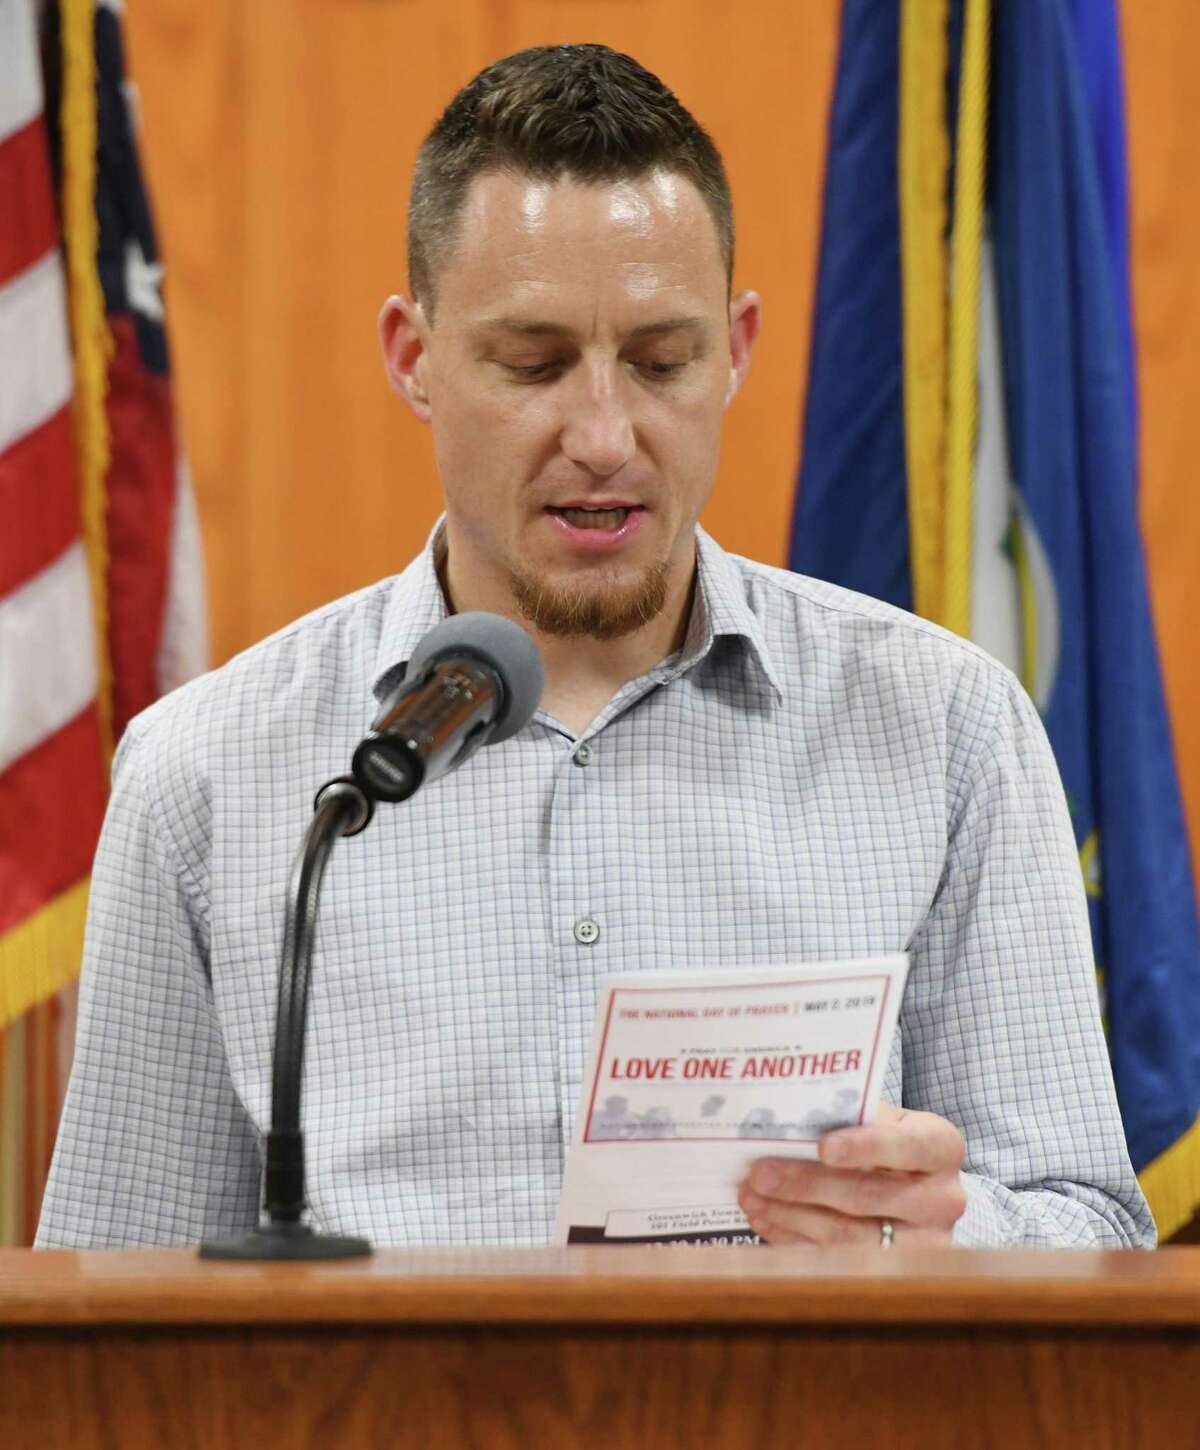 """The Rev. Jake Kircher, of Trinity Church, leads a prayer for America during the National Day of Prayer interfaith program at Town Hall in Greenwich, Conn. Thursday, May 2, 2019. The Town of Greenwich welcomed community religious leaders in a celebration of different religions through scripture readings and prayers for the nation, education, military, government, family, business and media under the theme """"love one another."""""""